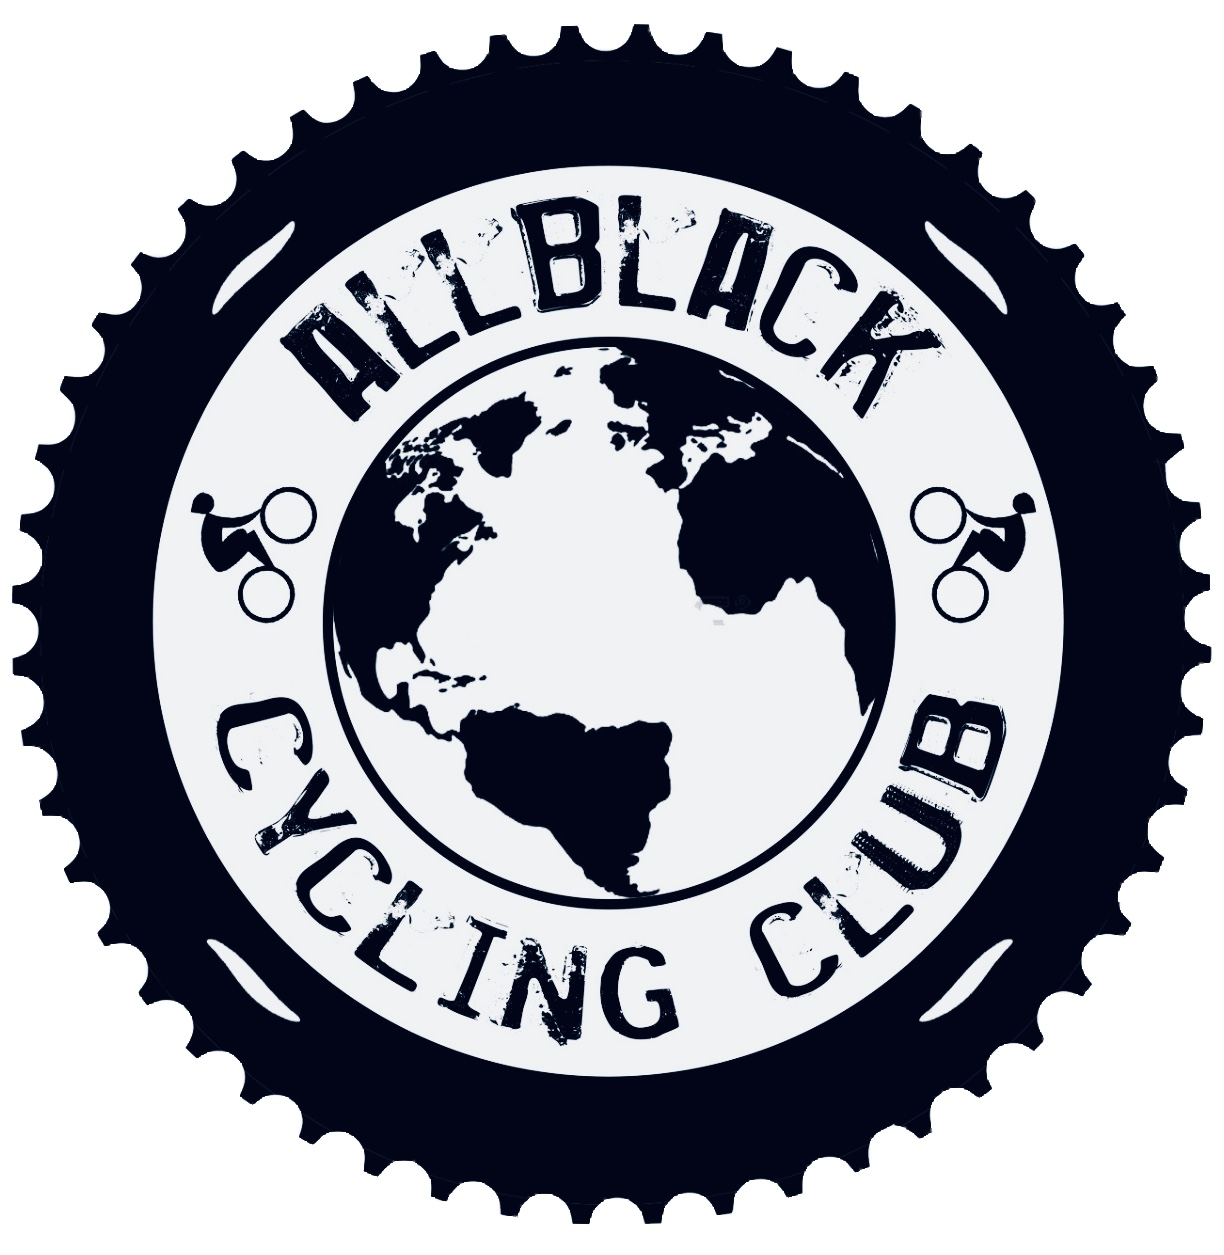 allblack cycling club